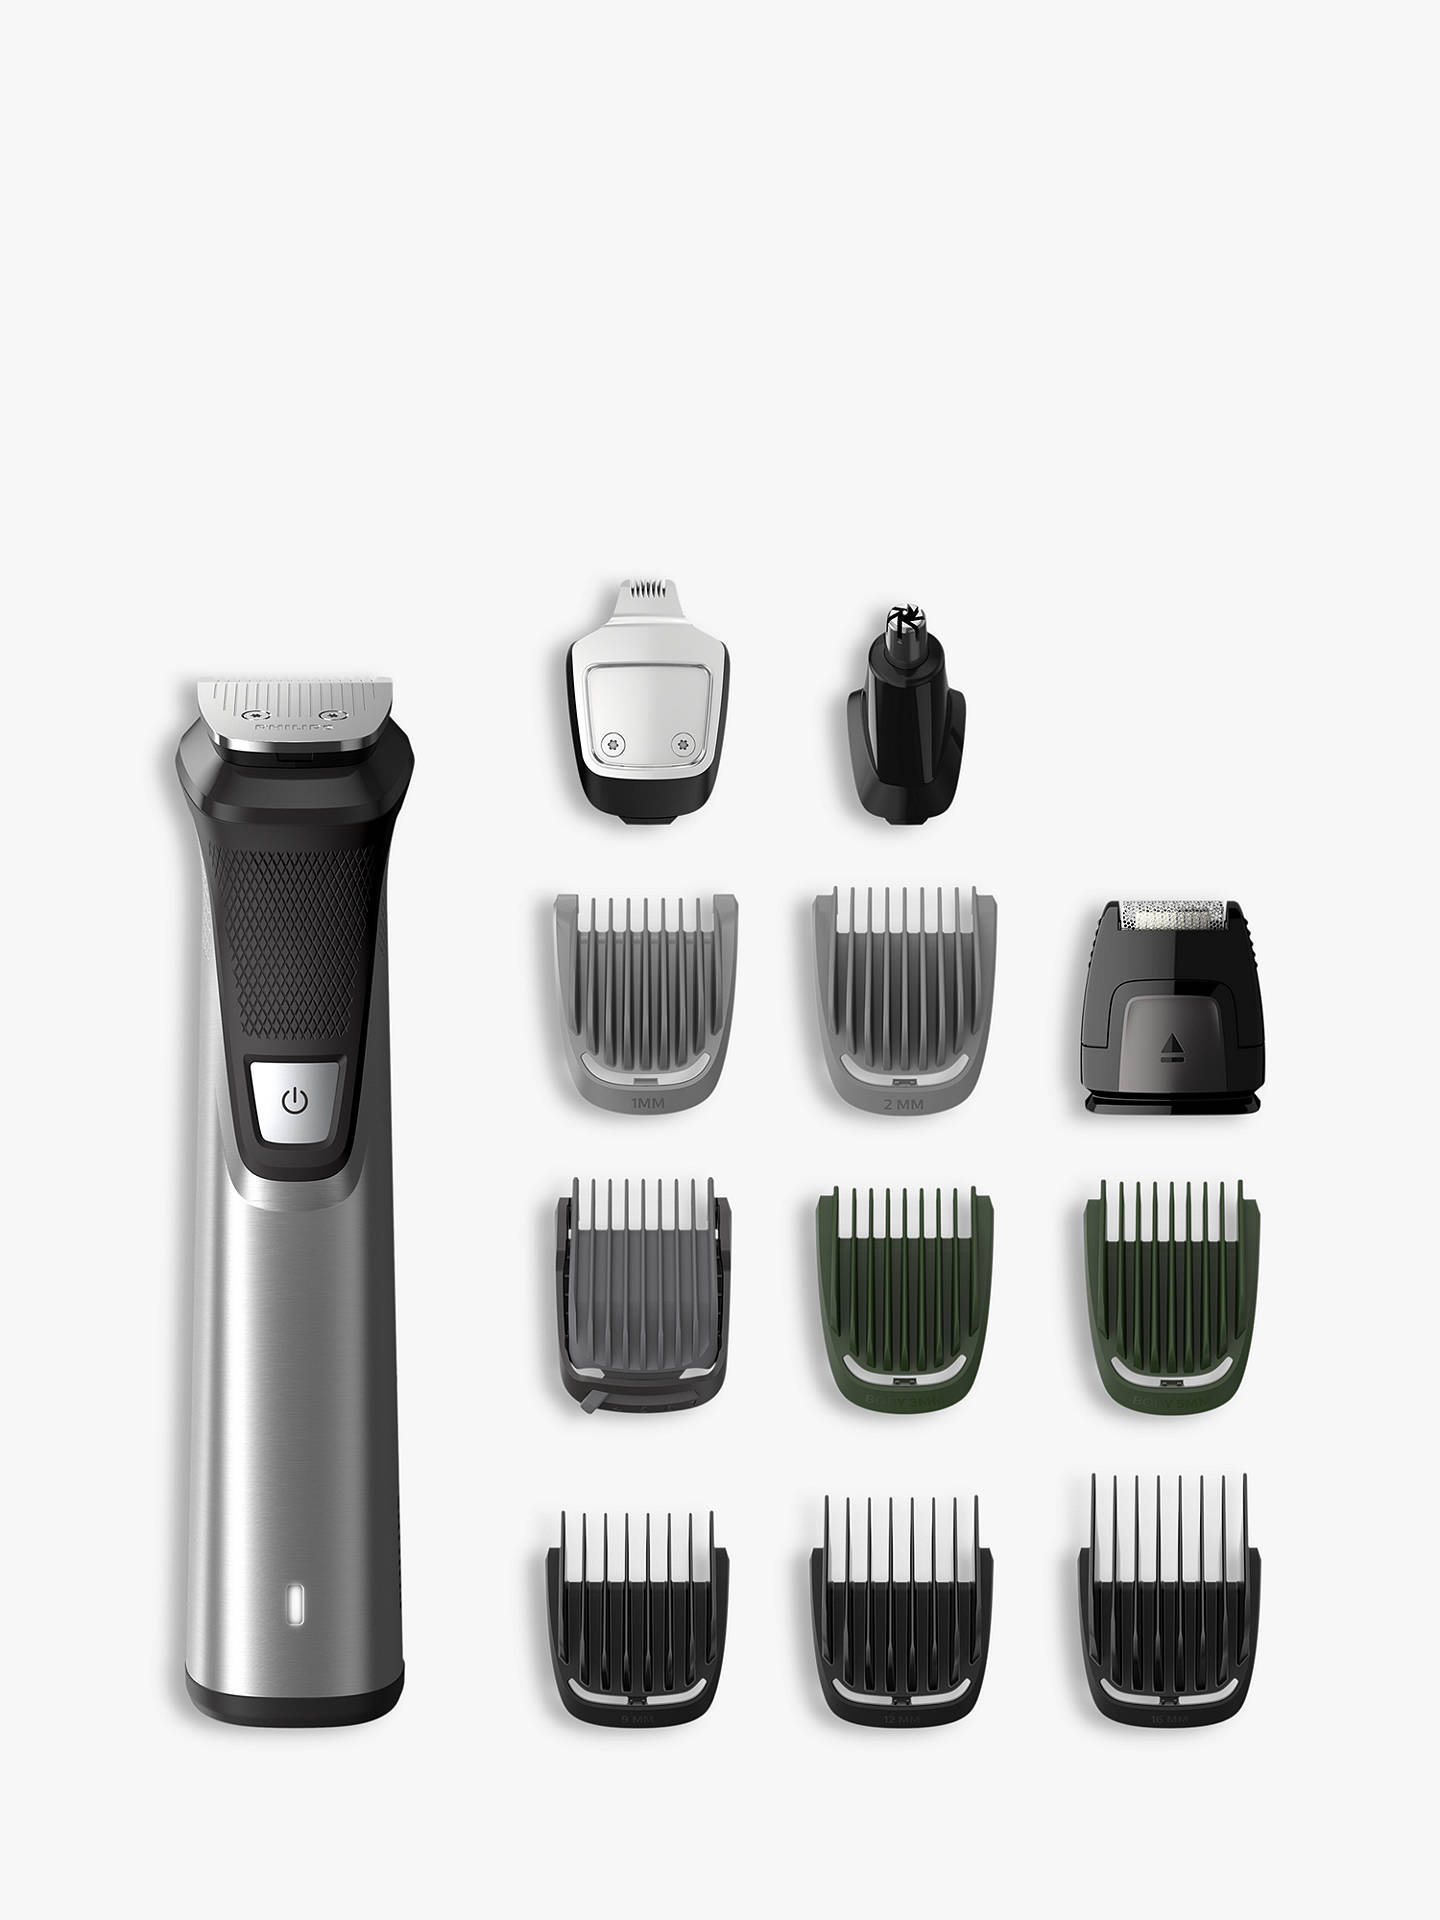 Philips Mg7735 33 Series 7000 Multigroom Electric Shaver Silver At